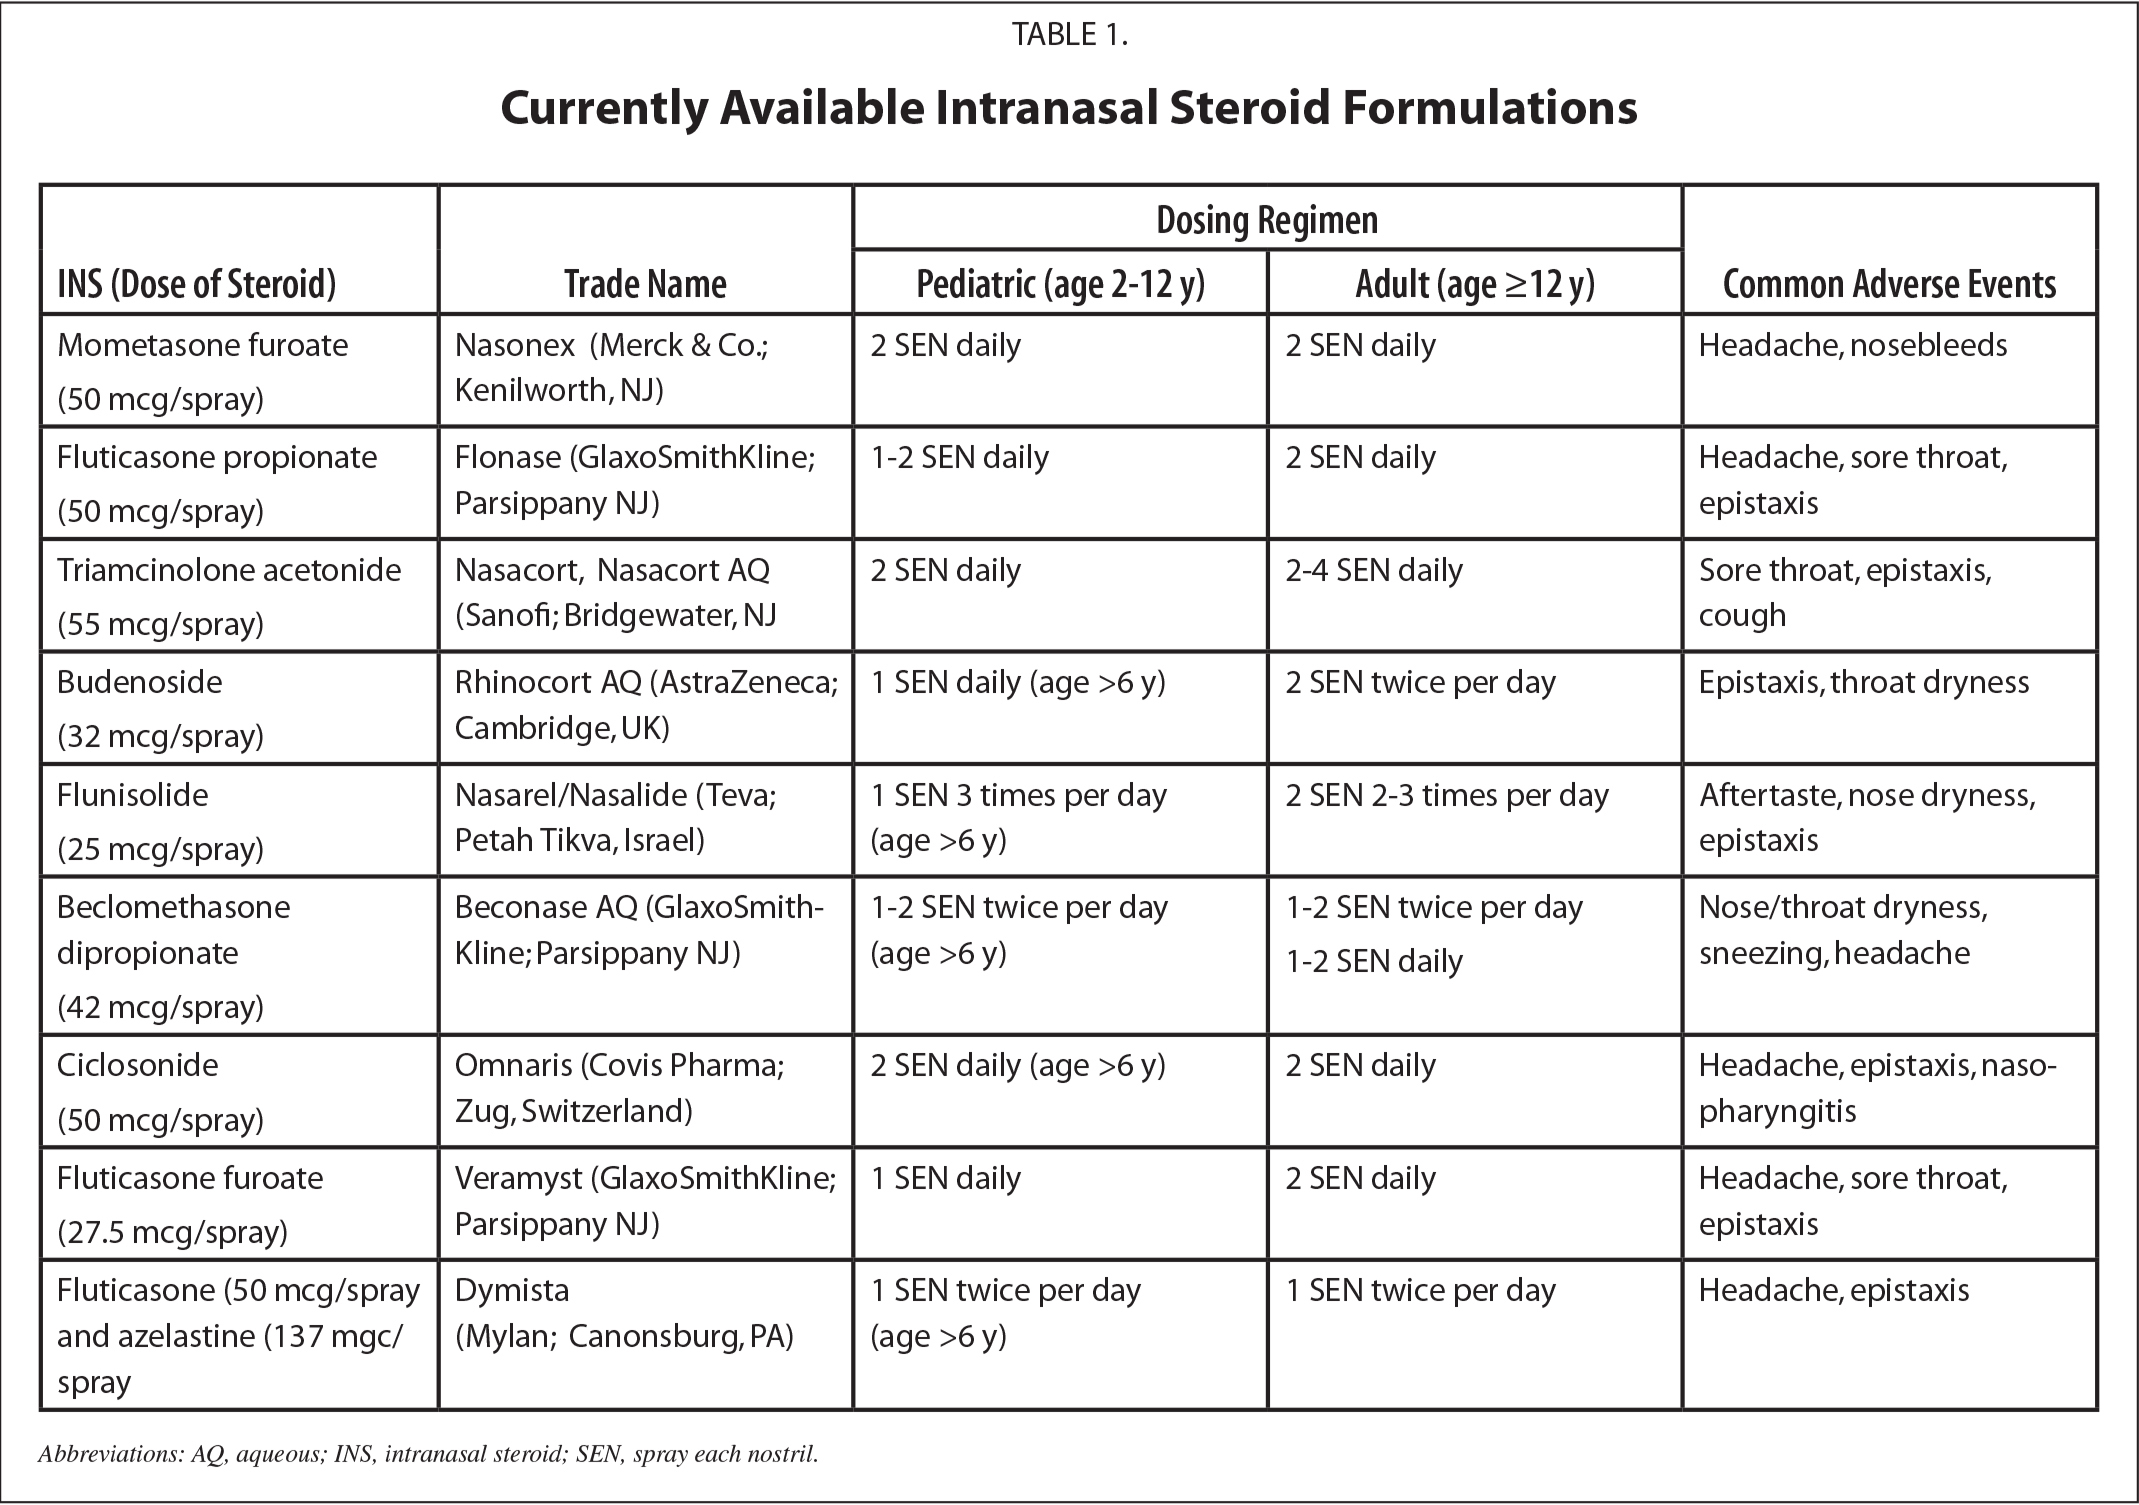 Currently Available Intranasal Steroid Formulations